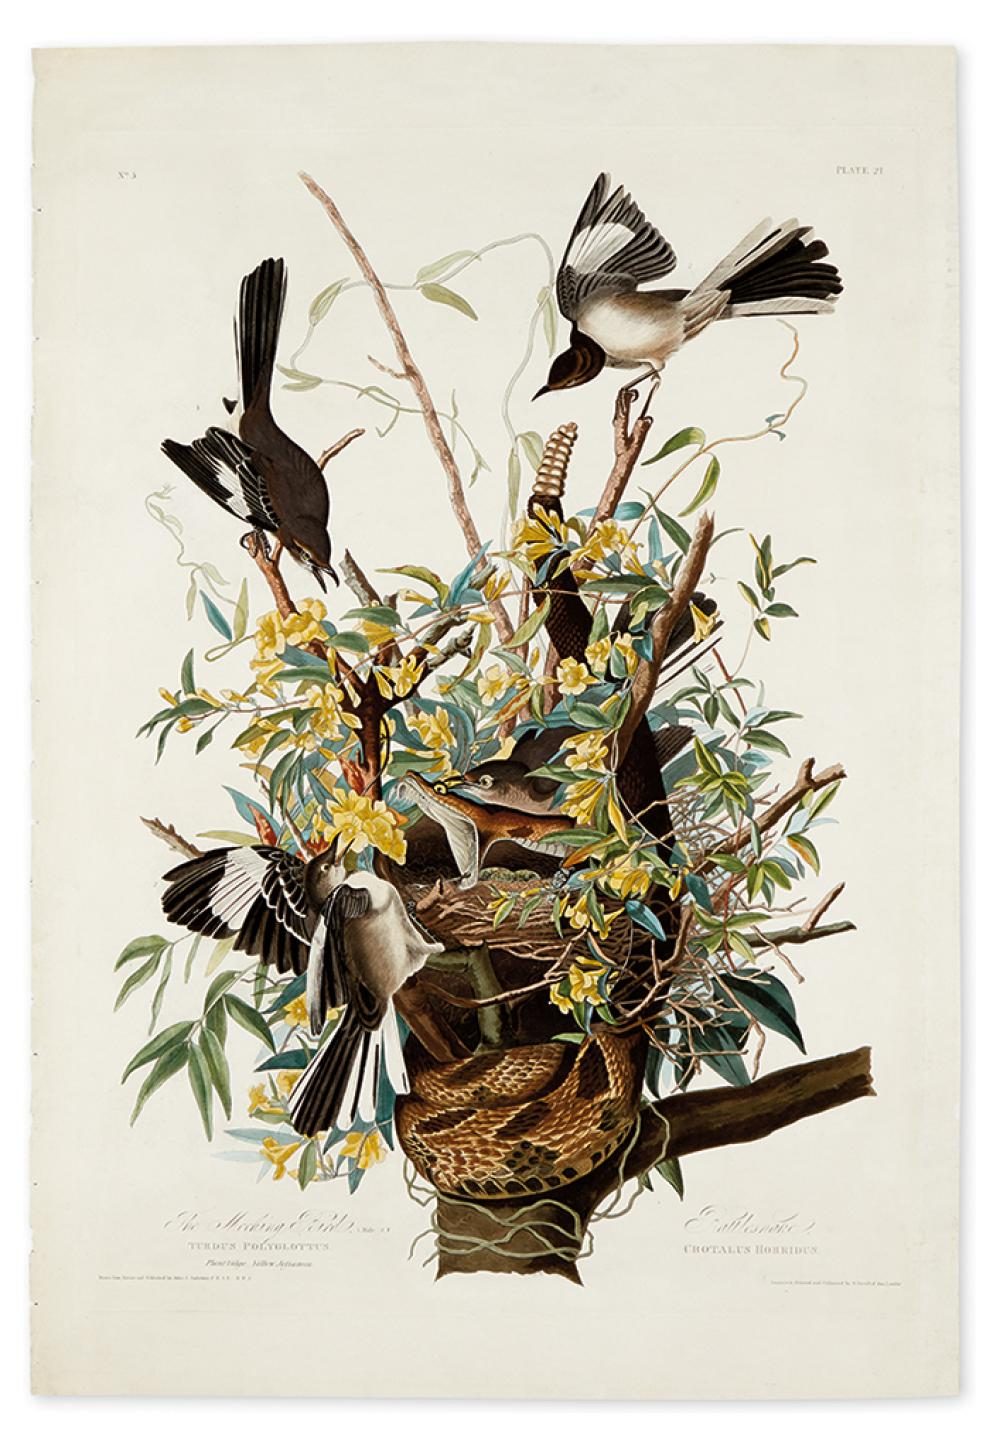 AUDUBON, JOHN JAMES. The Mocking Bird. Plate 21. [Variant 1.]